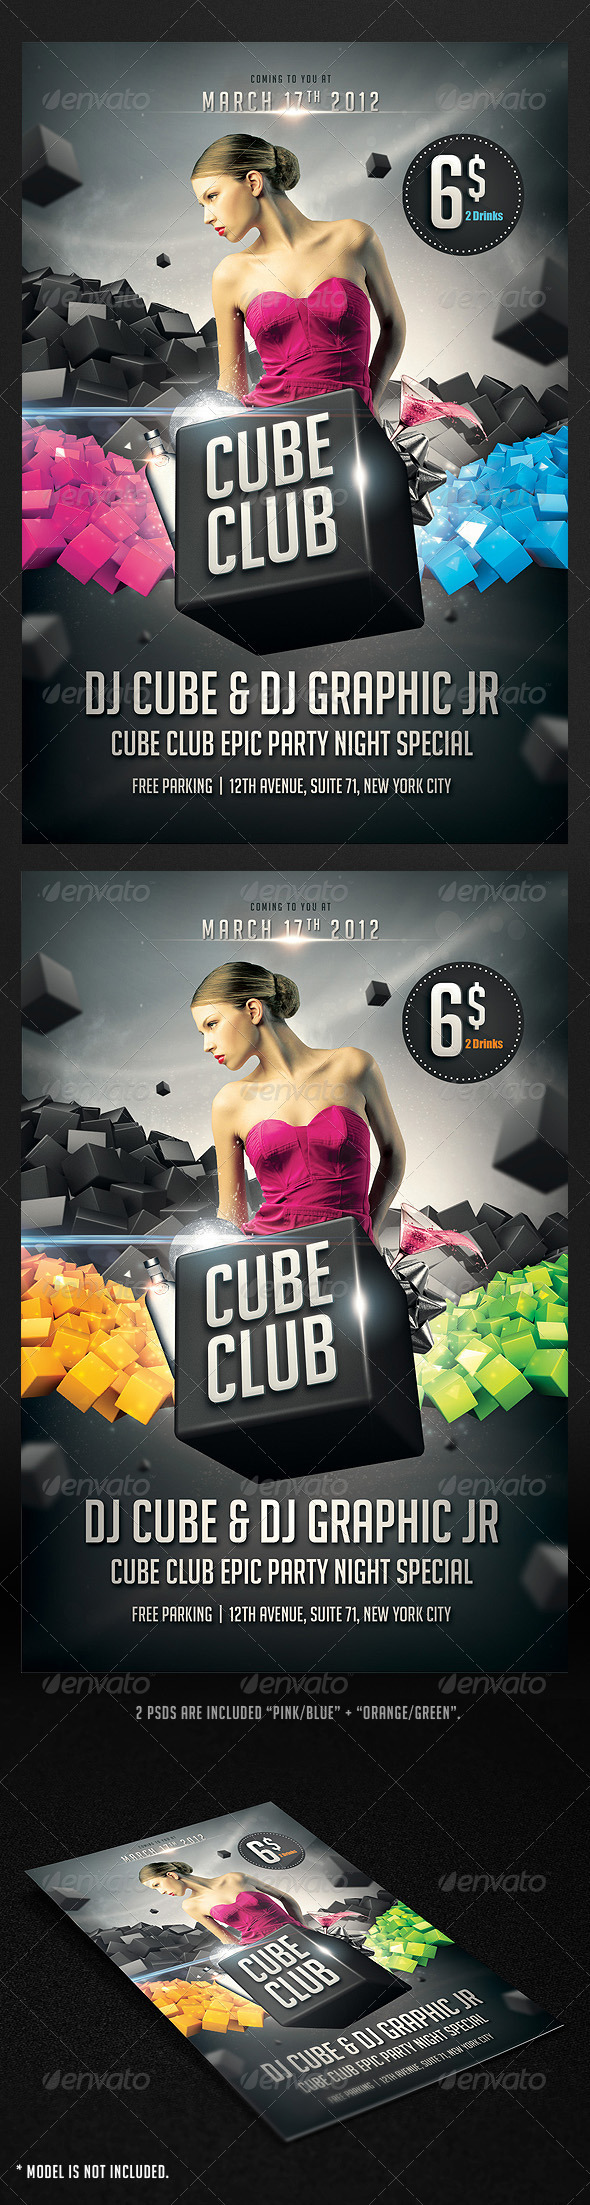 Cube Club Flyer - Flyers Print Templates